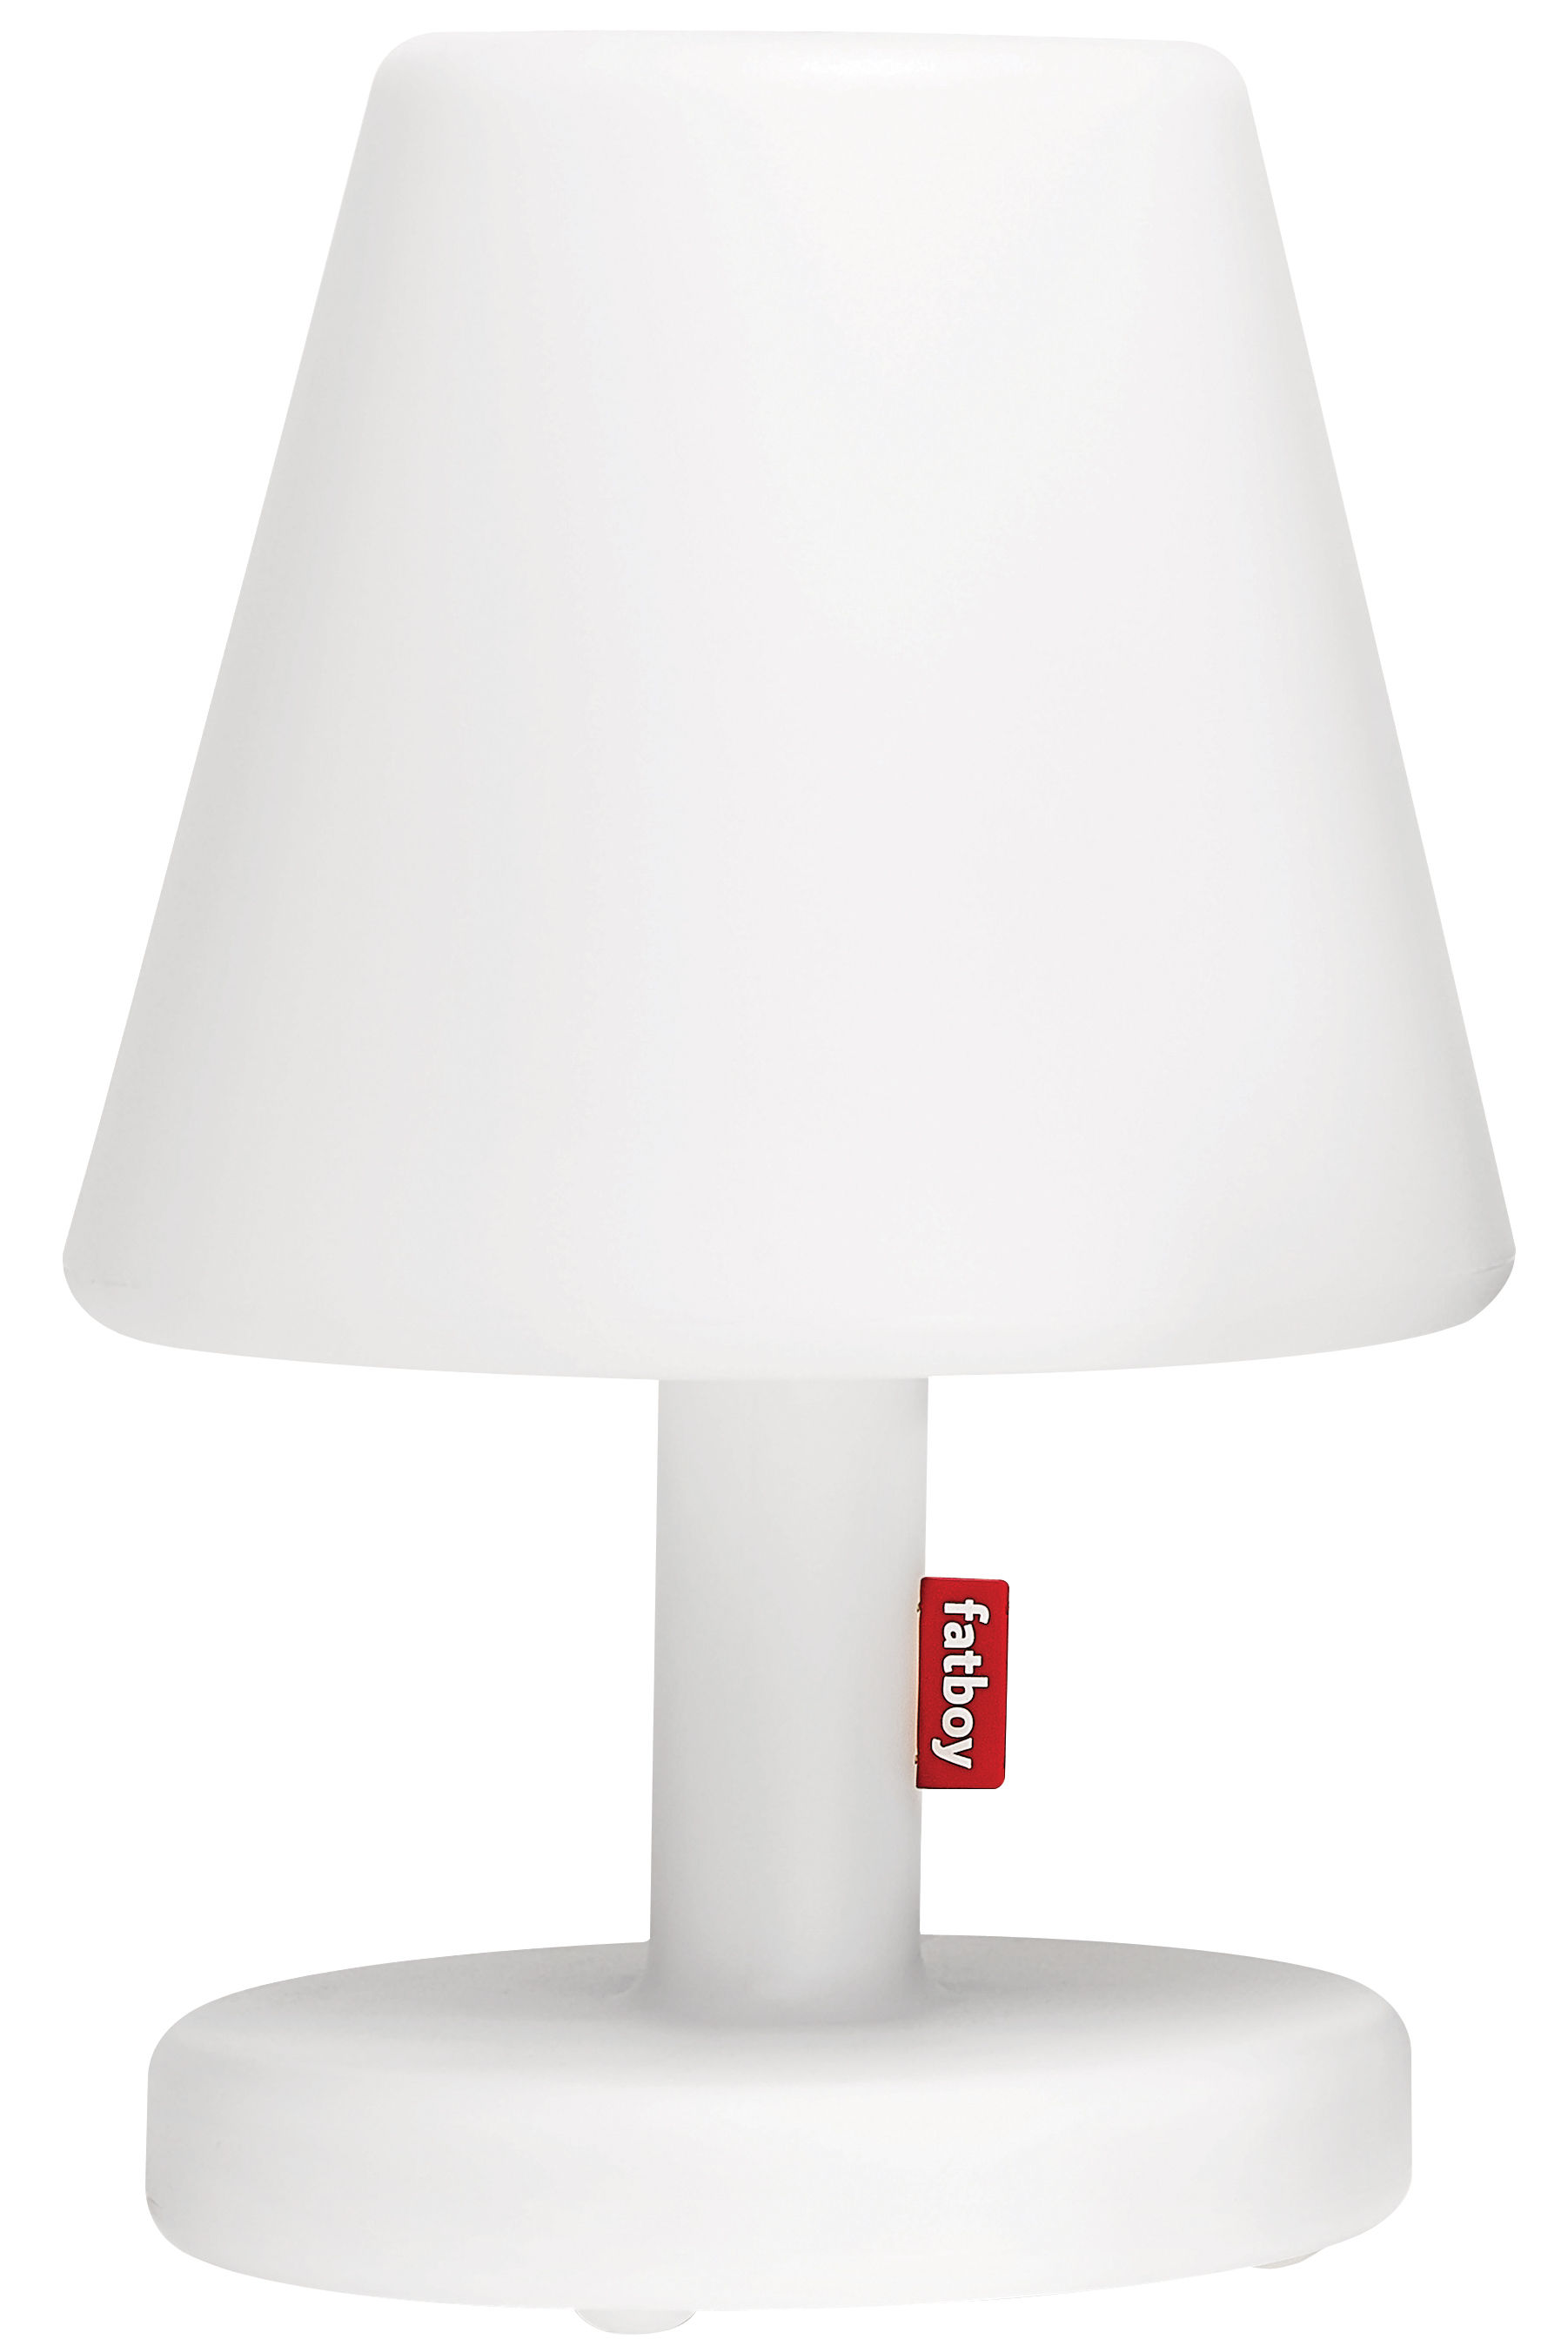 Lighting - Table Lamps - Edison the Medium Lamp by Fatboy - White - Polythene